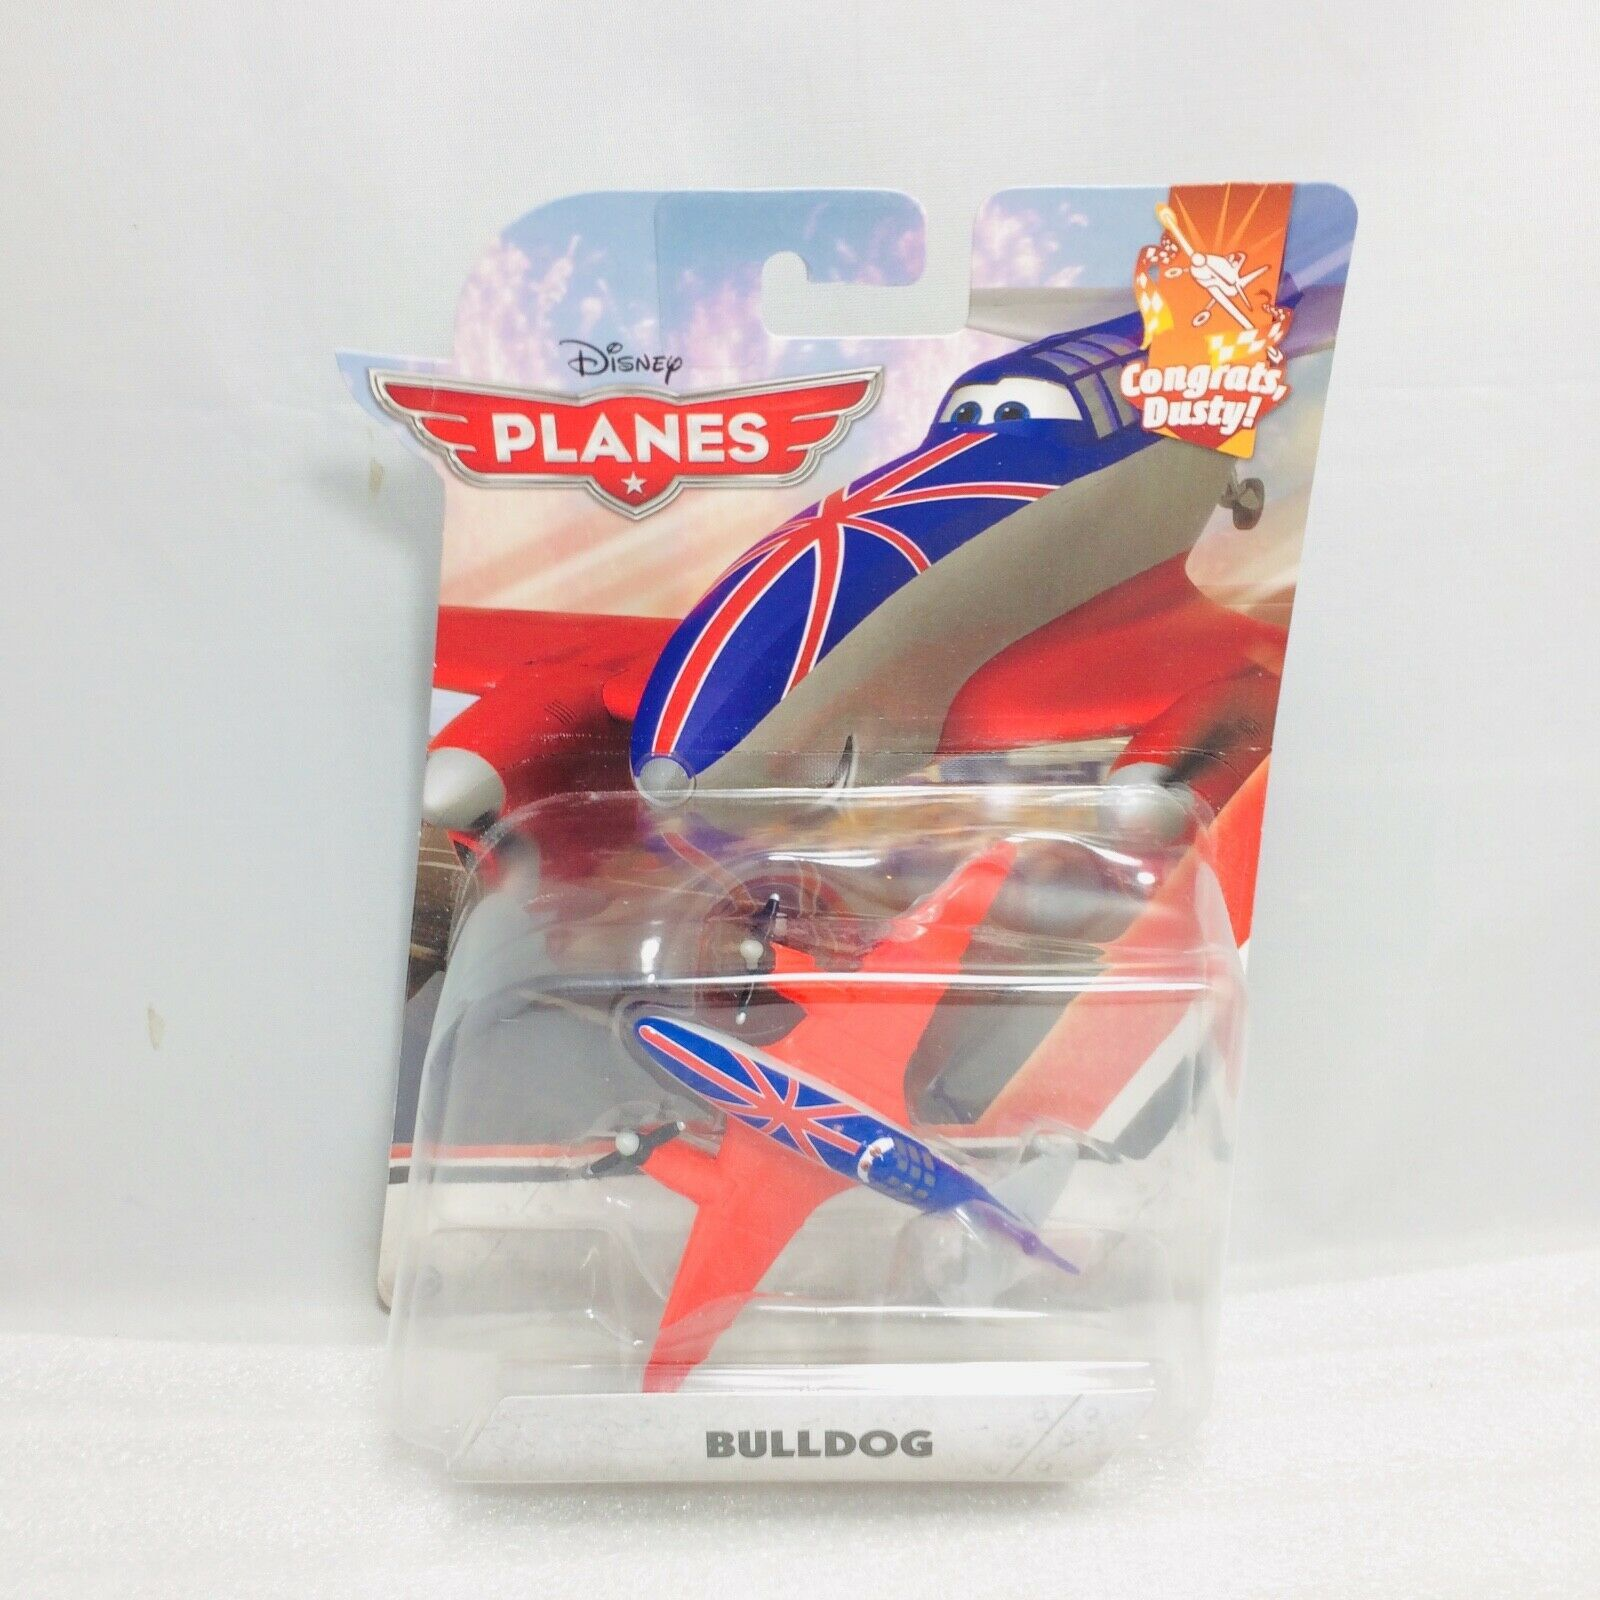 Disney Pixar Planes Bulldog New in Package - 2015 - Rare image 1